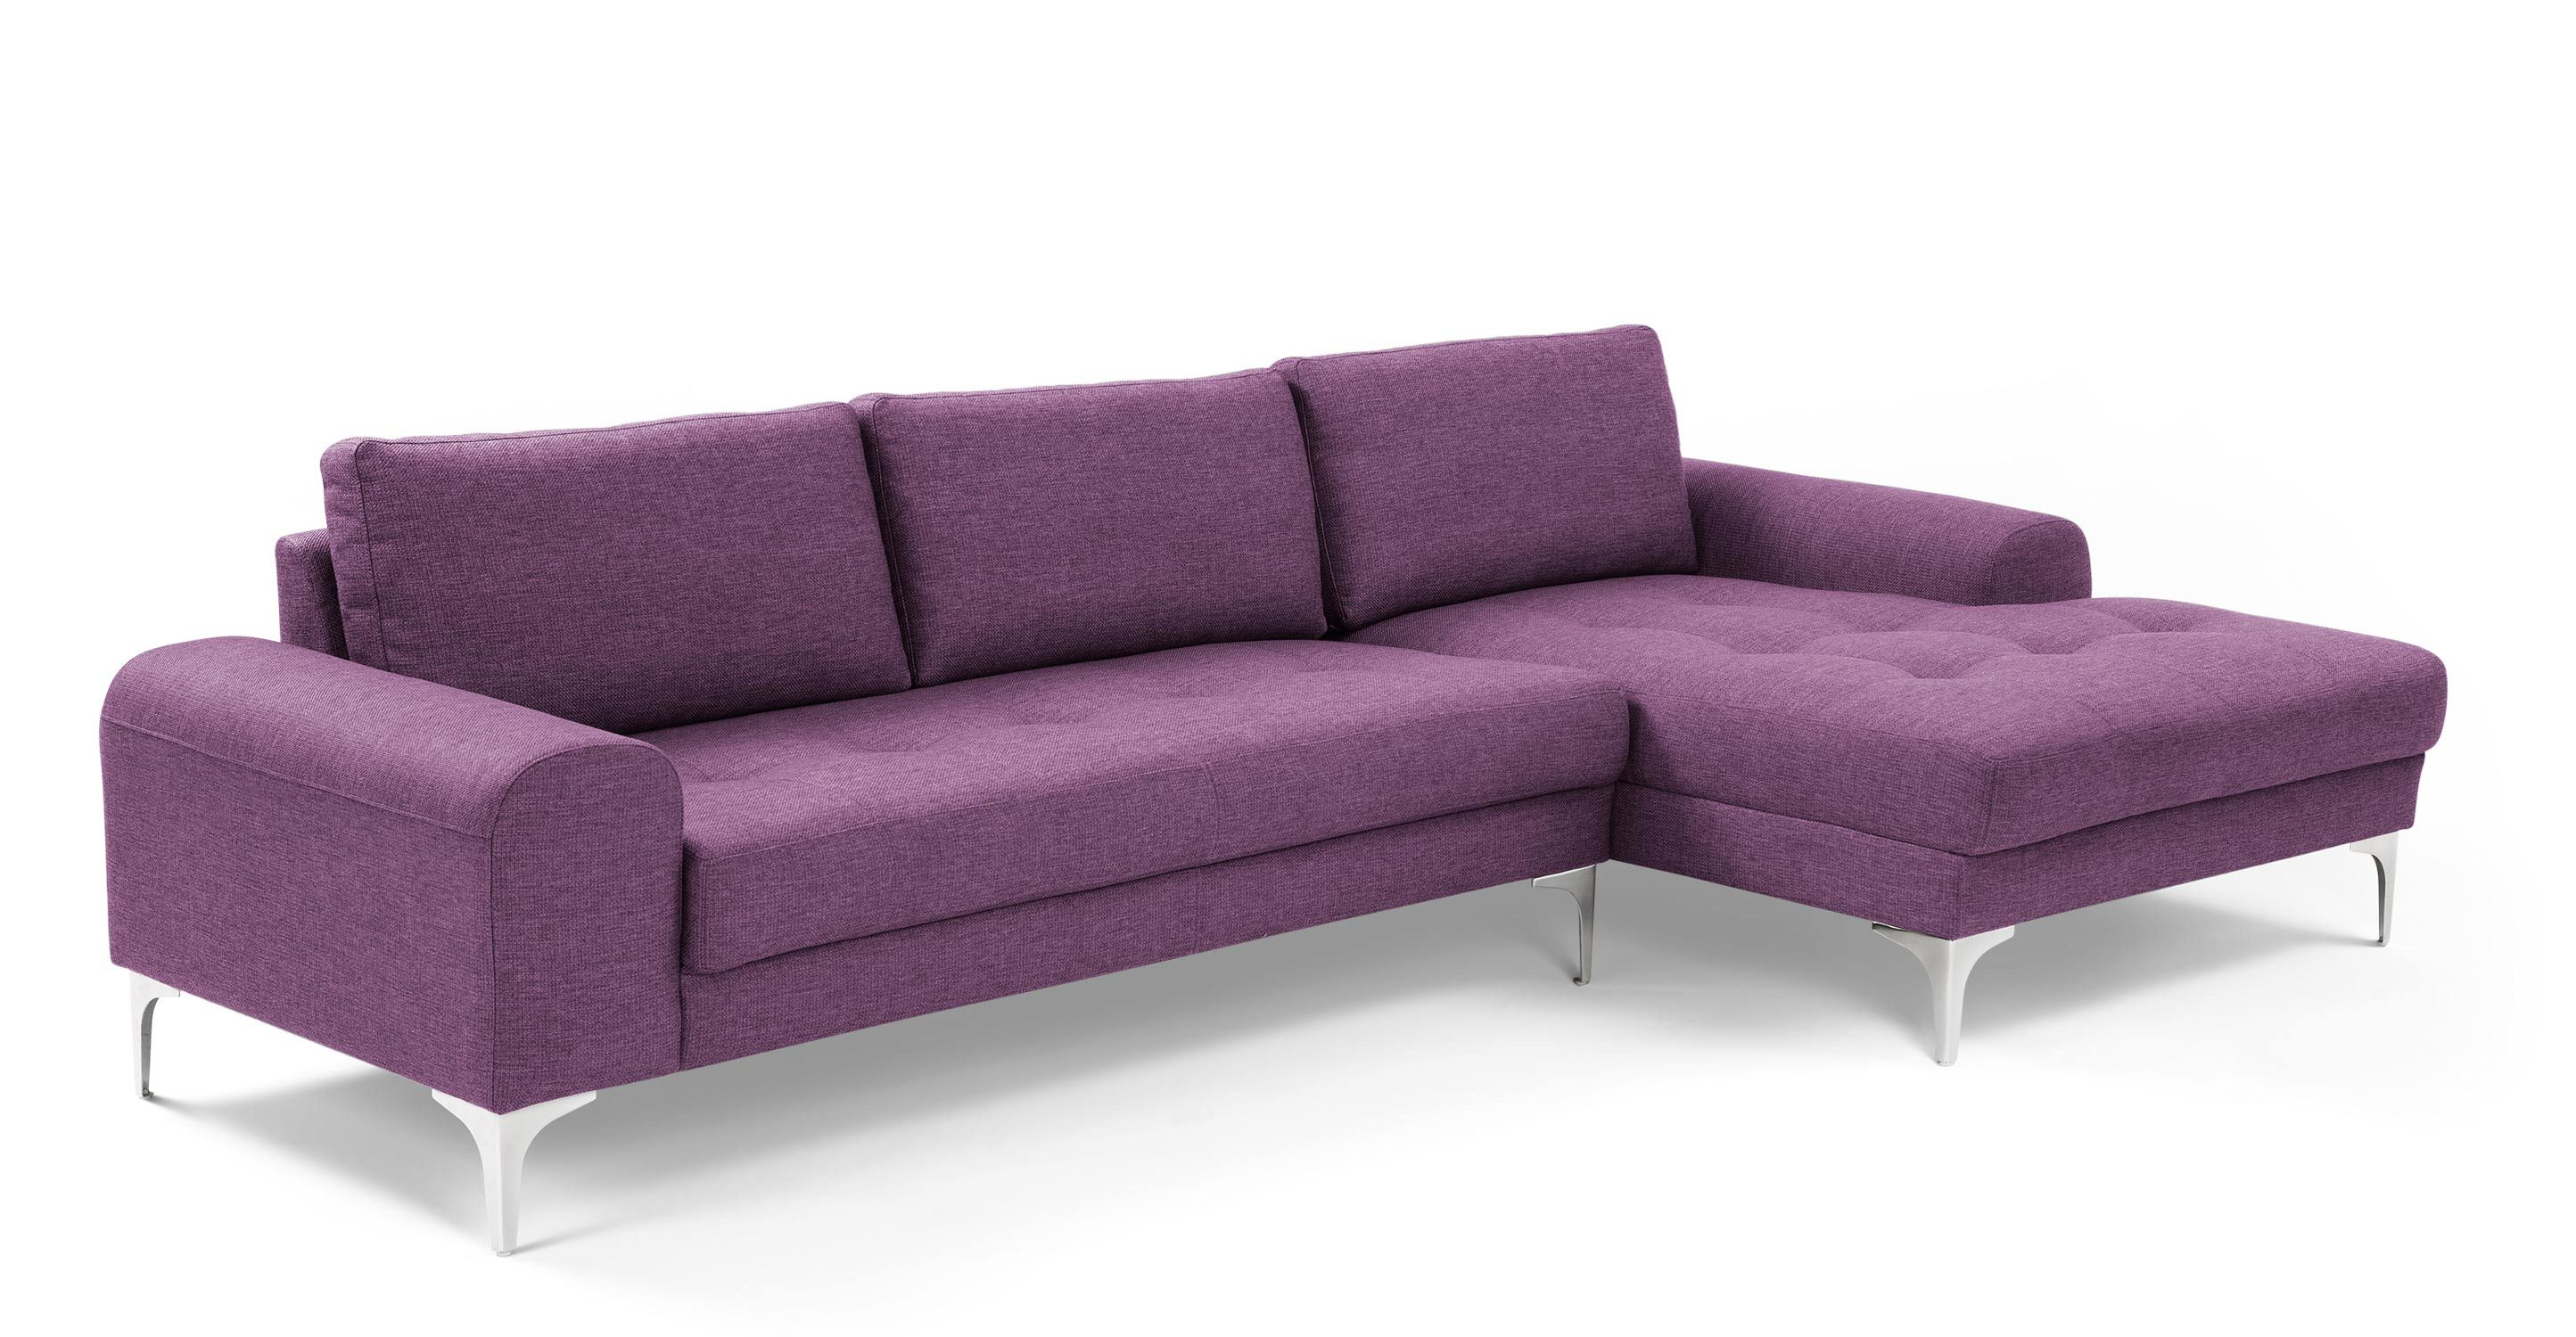 Snuggle up or stretch out - the Vittorio corner sofa comfortably seats up to six people.